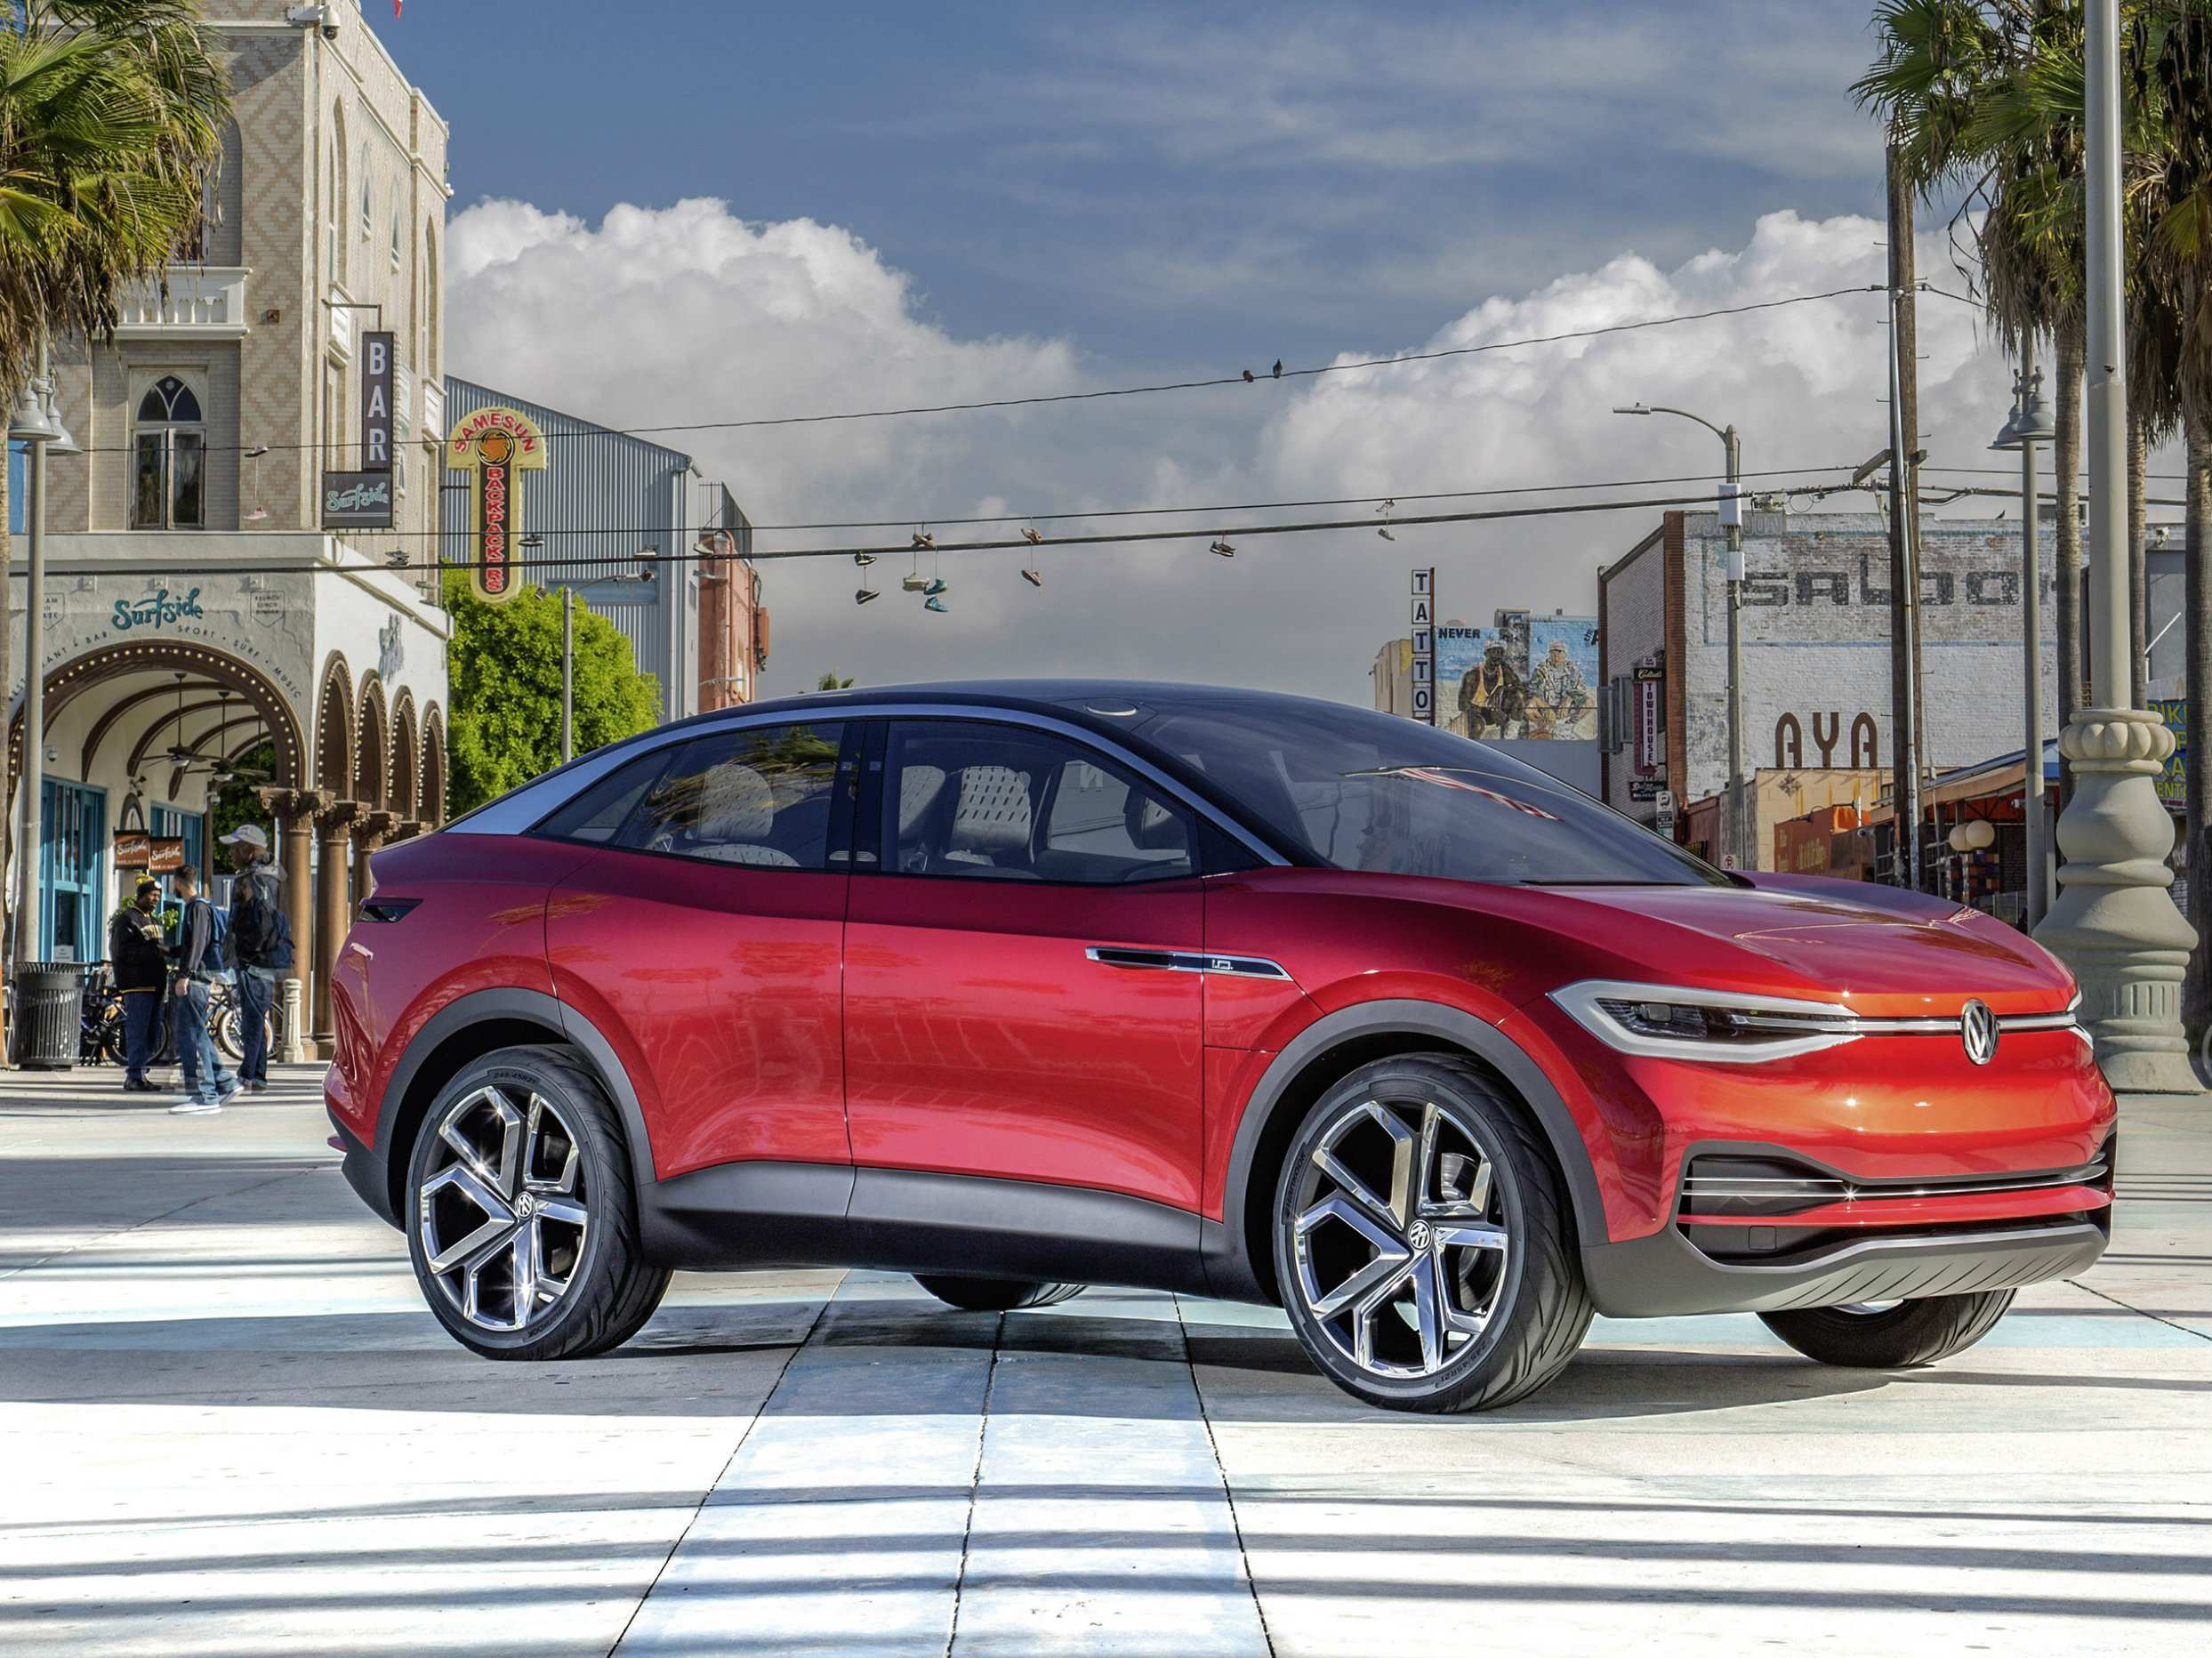 36 Best Volkswagen Electric Suv 2020 Images